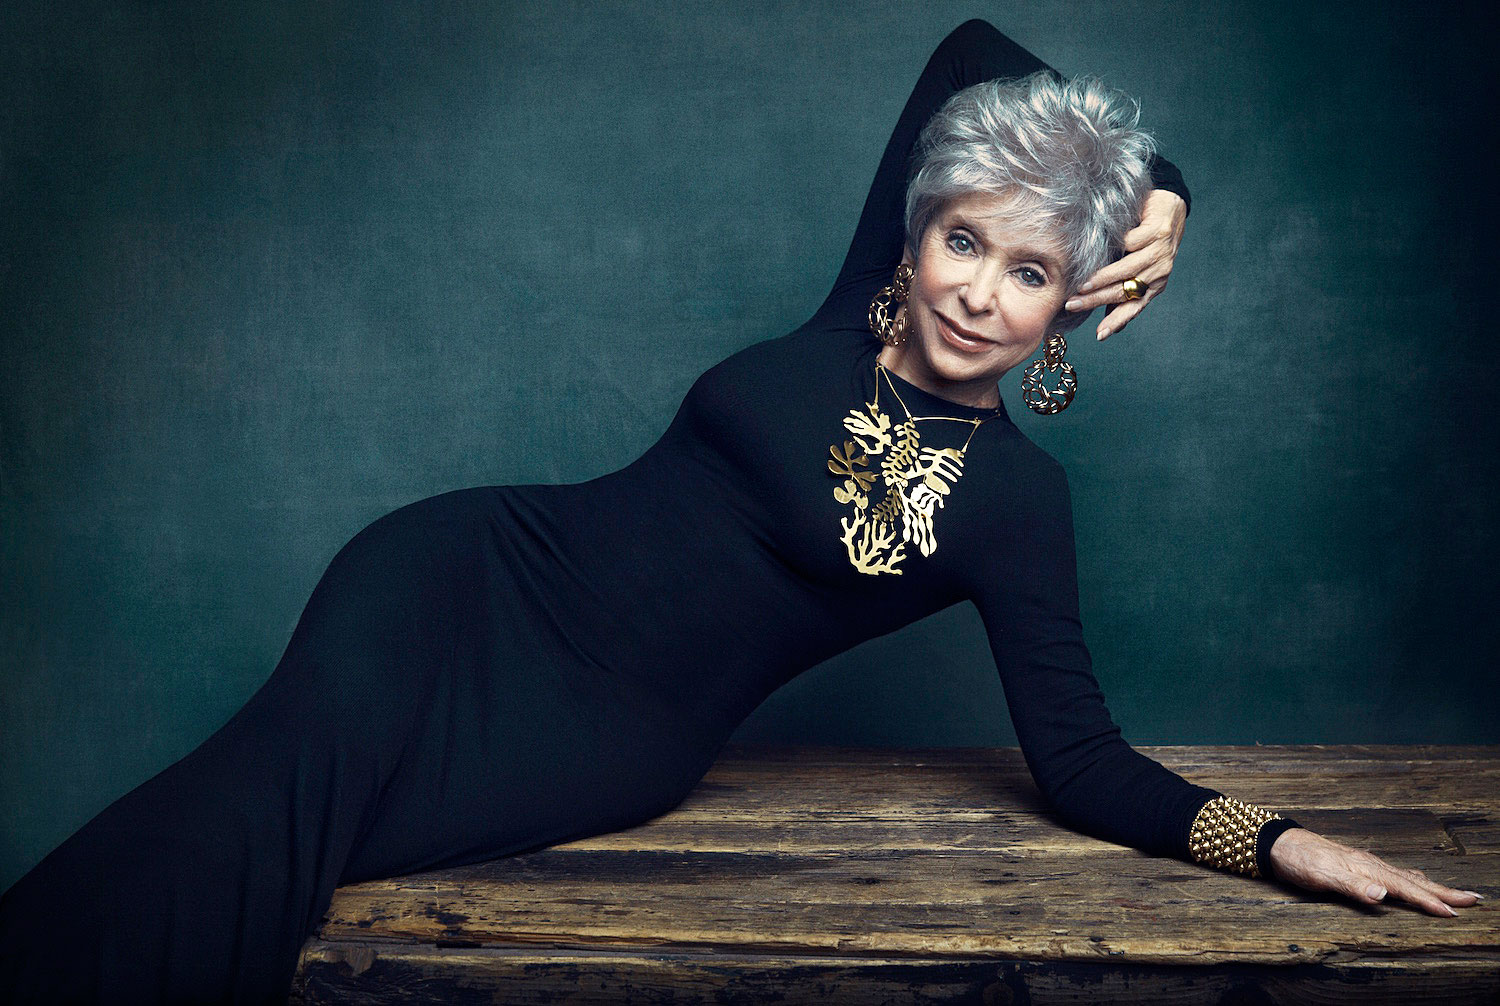 Rita Moreno 25 Things You Don't Know About Me